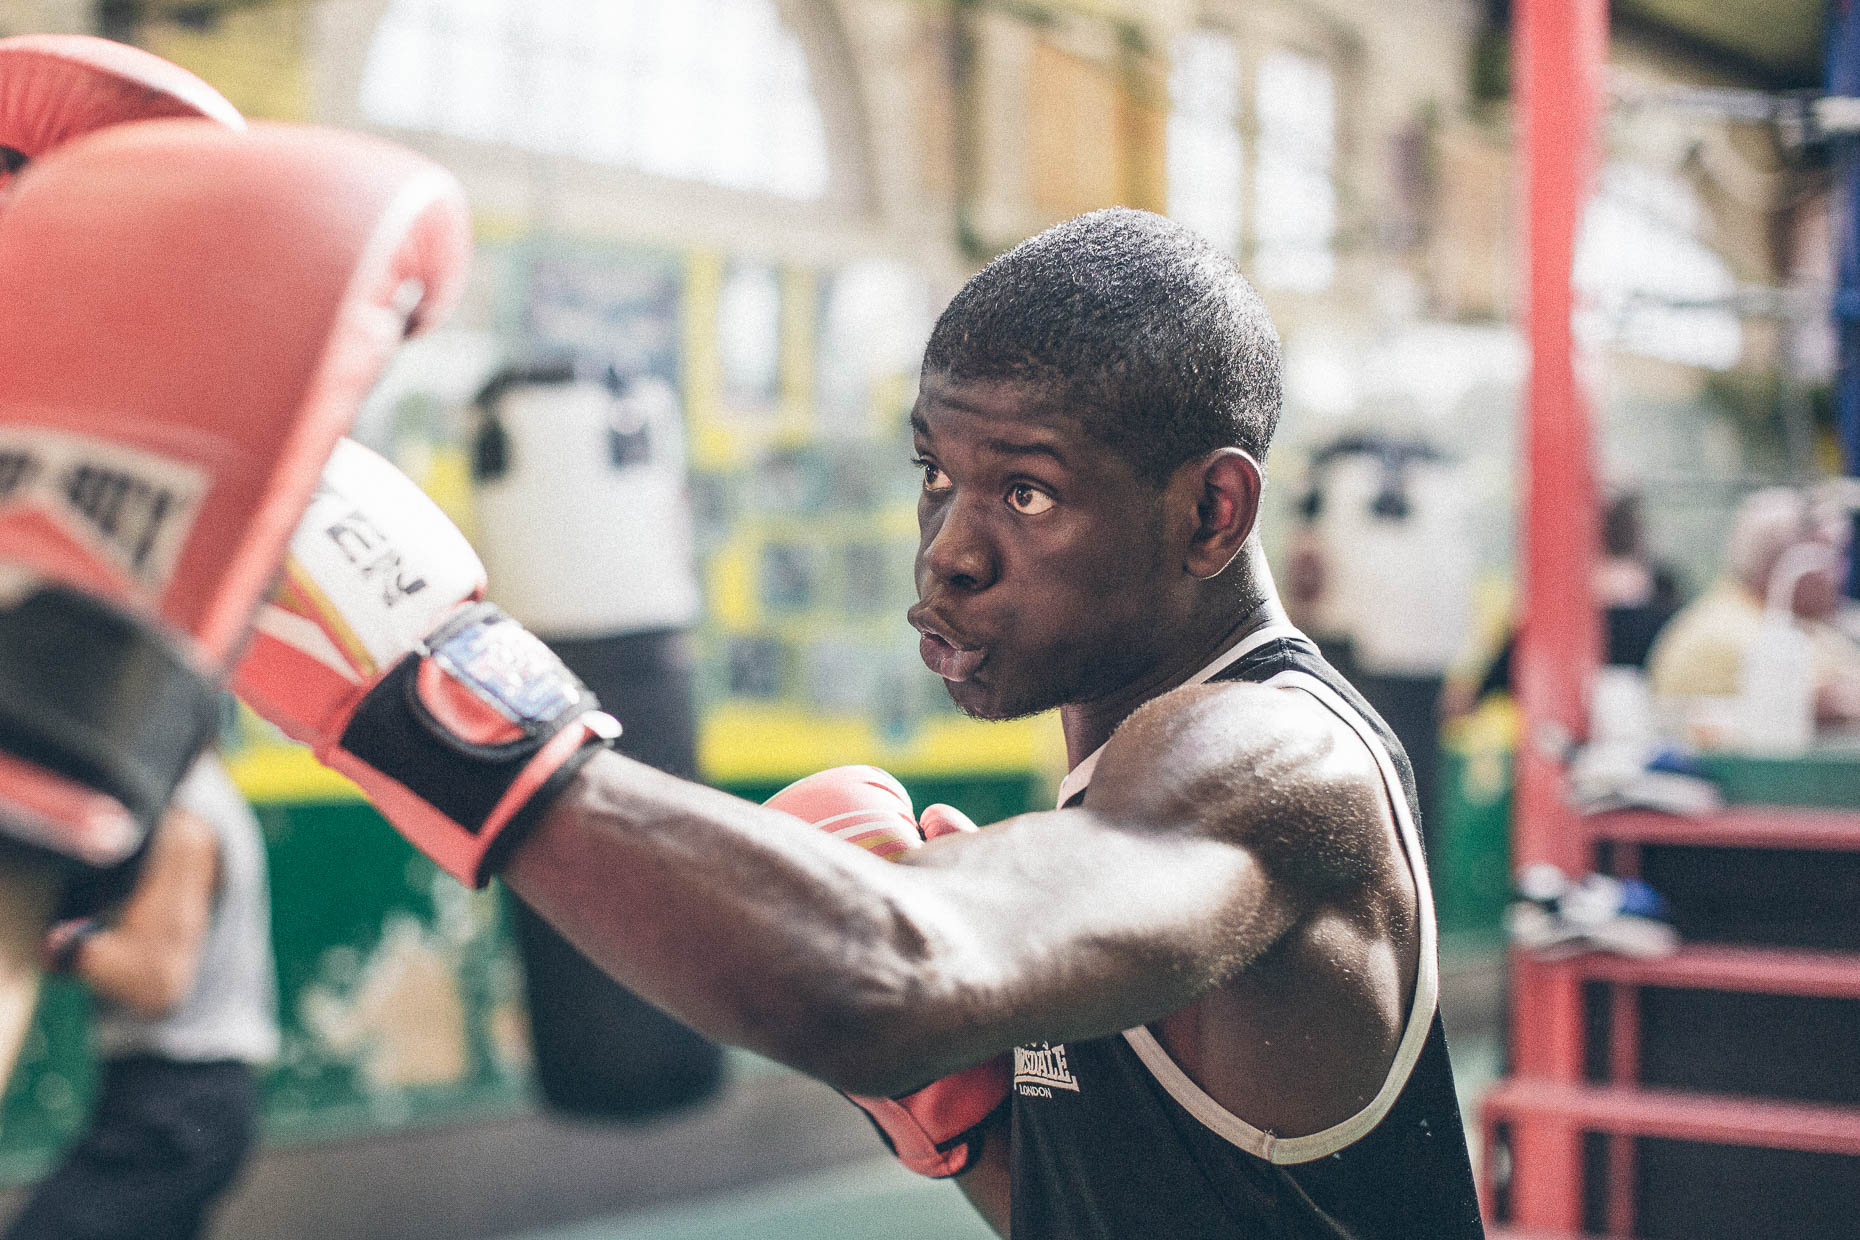 031_JulianLove_London_Lifestyle_Photographer_Boxing Sport